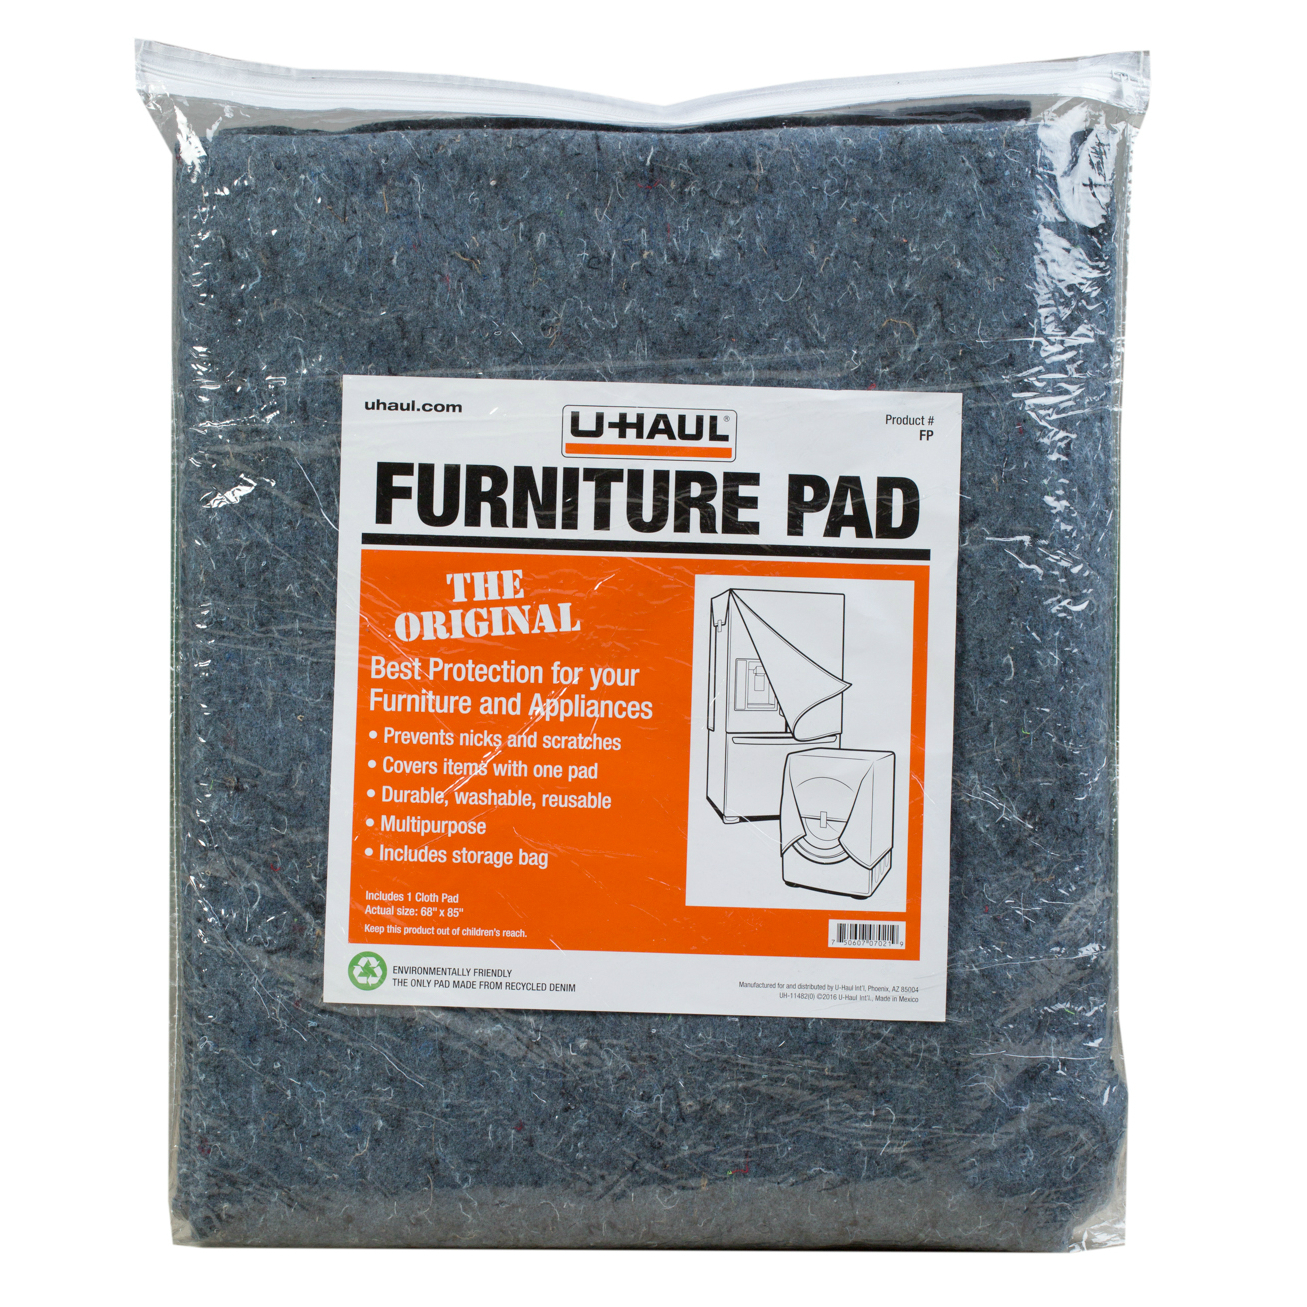 UHaul Furniture Pad - Furniture pads for moving